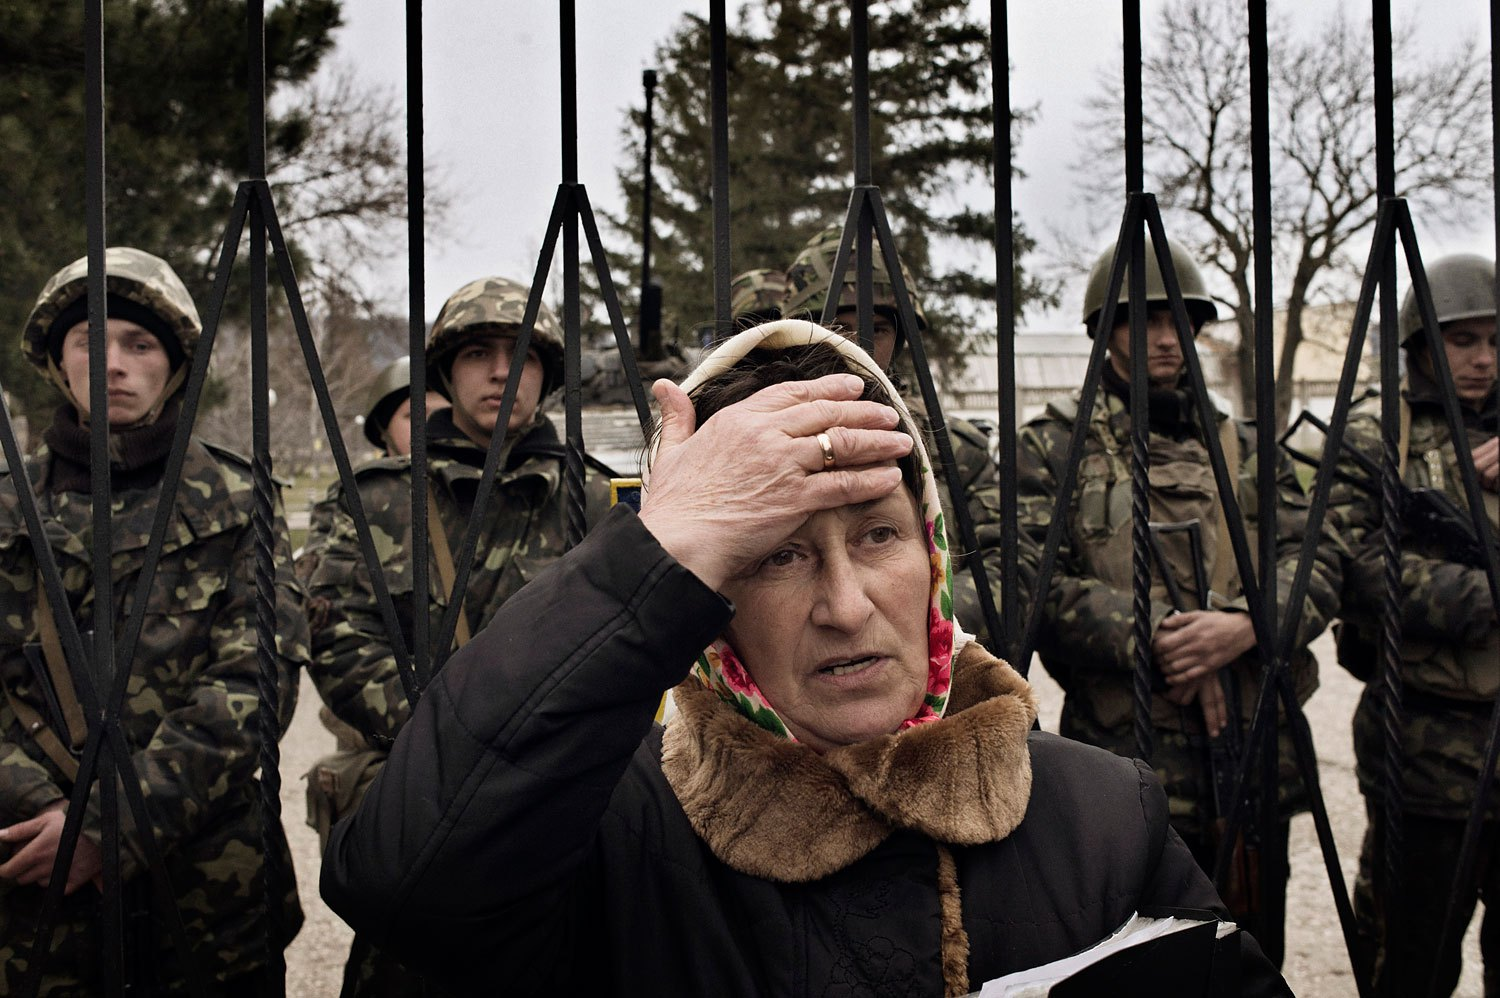 A Ukrainian woman reacts as troops in unmarked uniforms hold positions in Perevalnoye, a small Ukrainian base roughly 15 miles south of Simferopol on Sunday, March 2, 2014. About two dozen Ukrainian soldiers could be seen behind her.